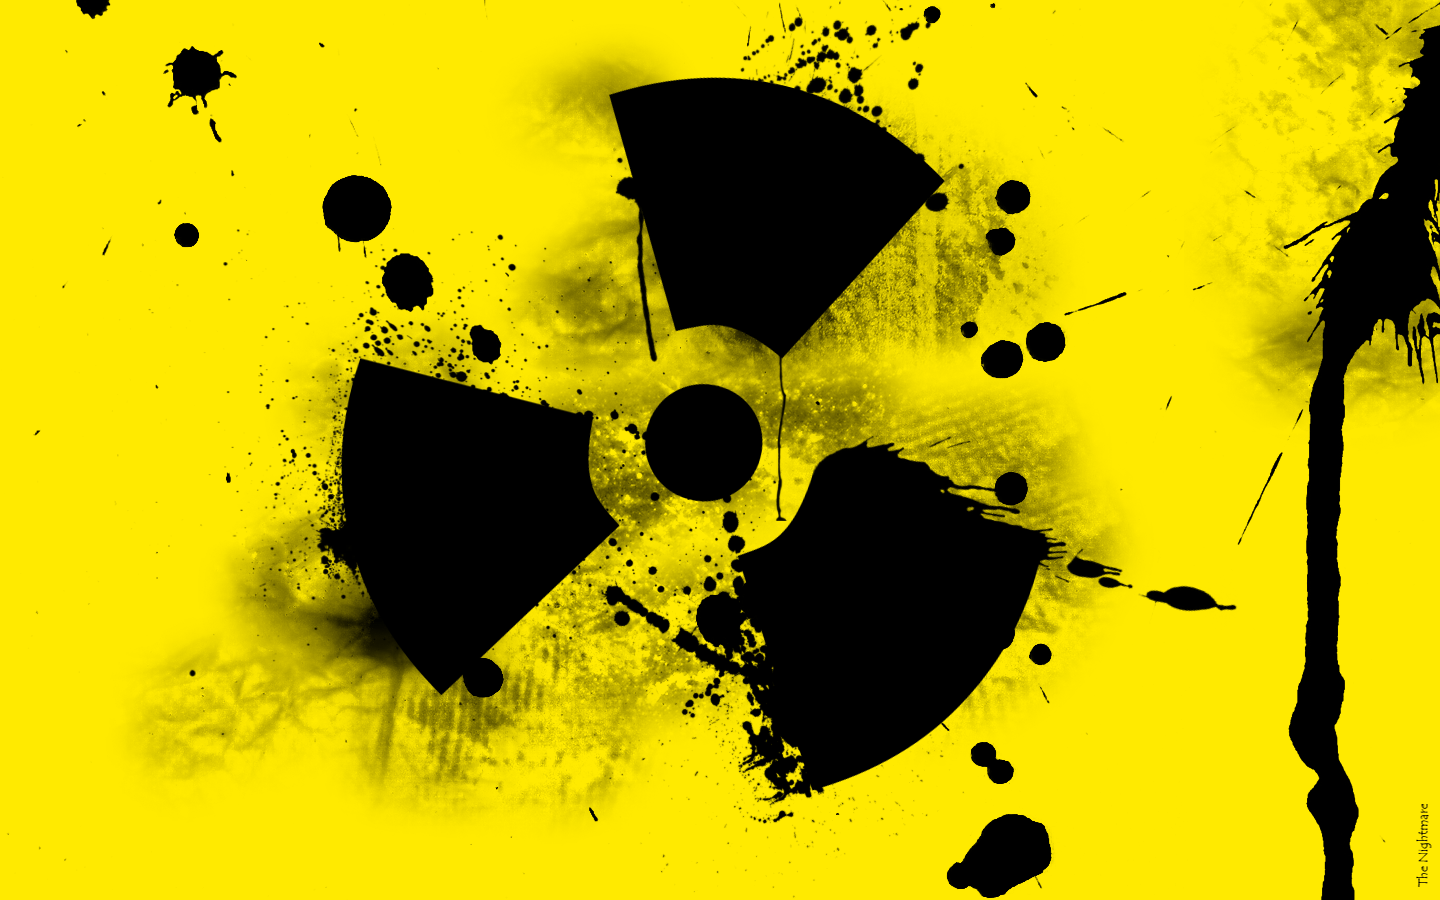 Wallpapers For > Radioactive Wallpaper